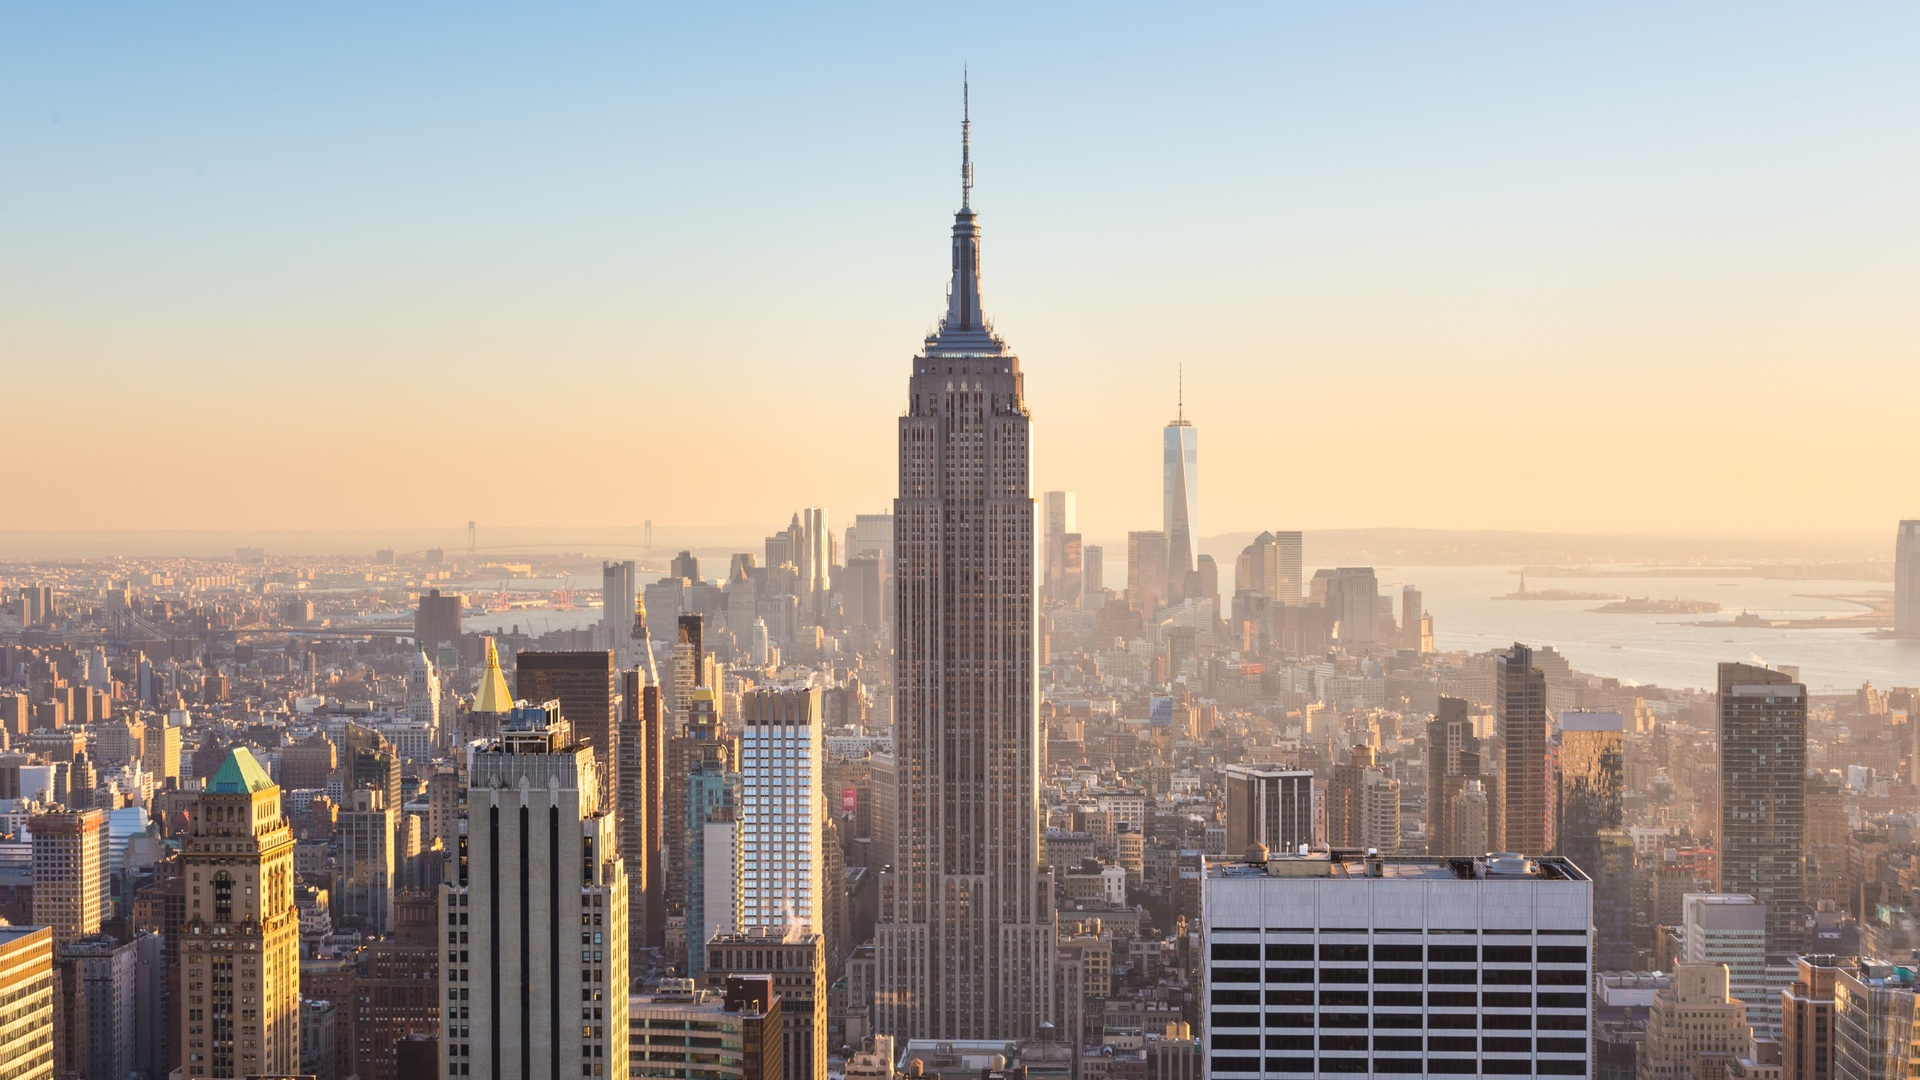 1920x1080 New York City Buildings At Day Sunlight Laptop Full Hd 1080p Hd 4k Wallpapers Images Backgrounds Photos And Pictures